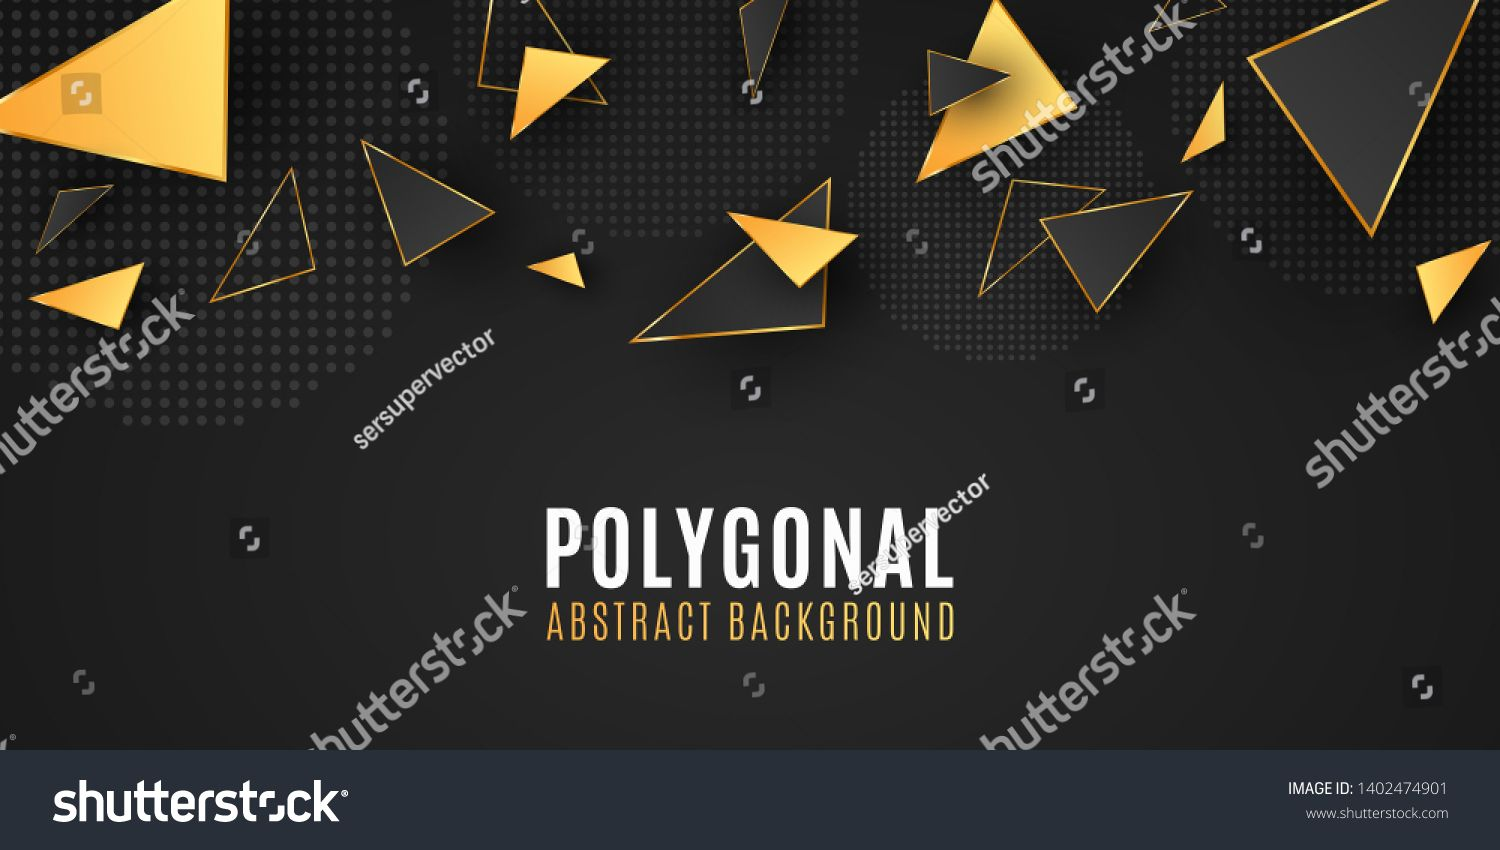 Abstract Geometric Shapes Stylish Background For Your Design